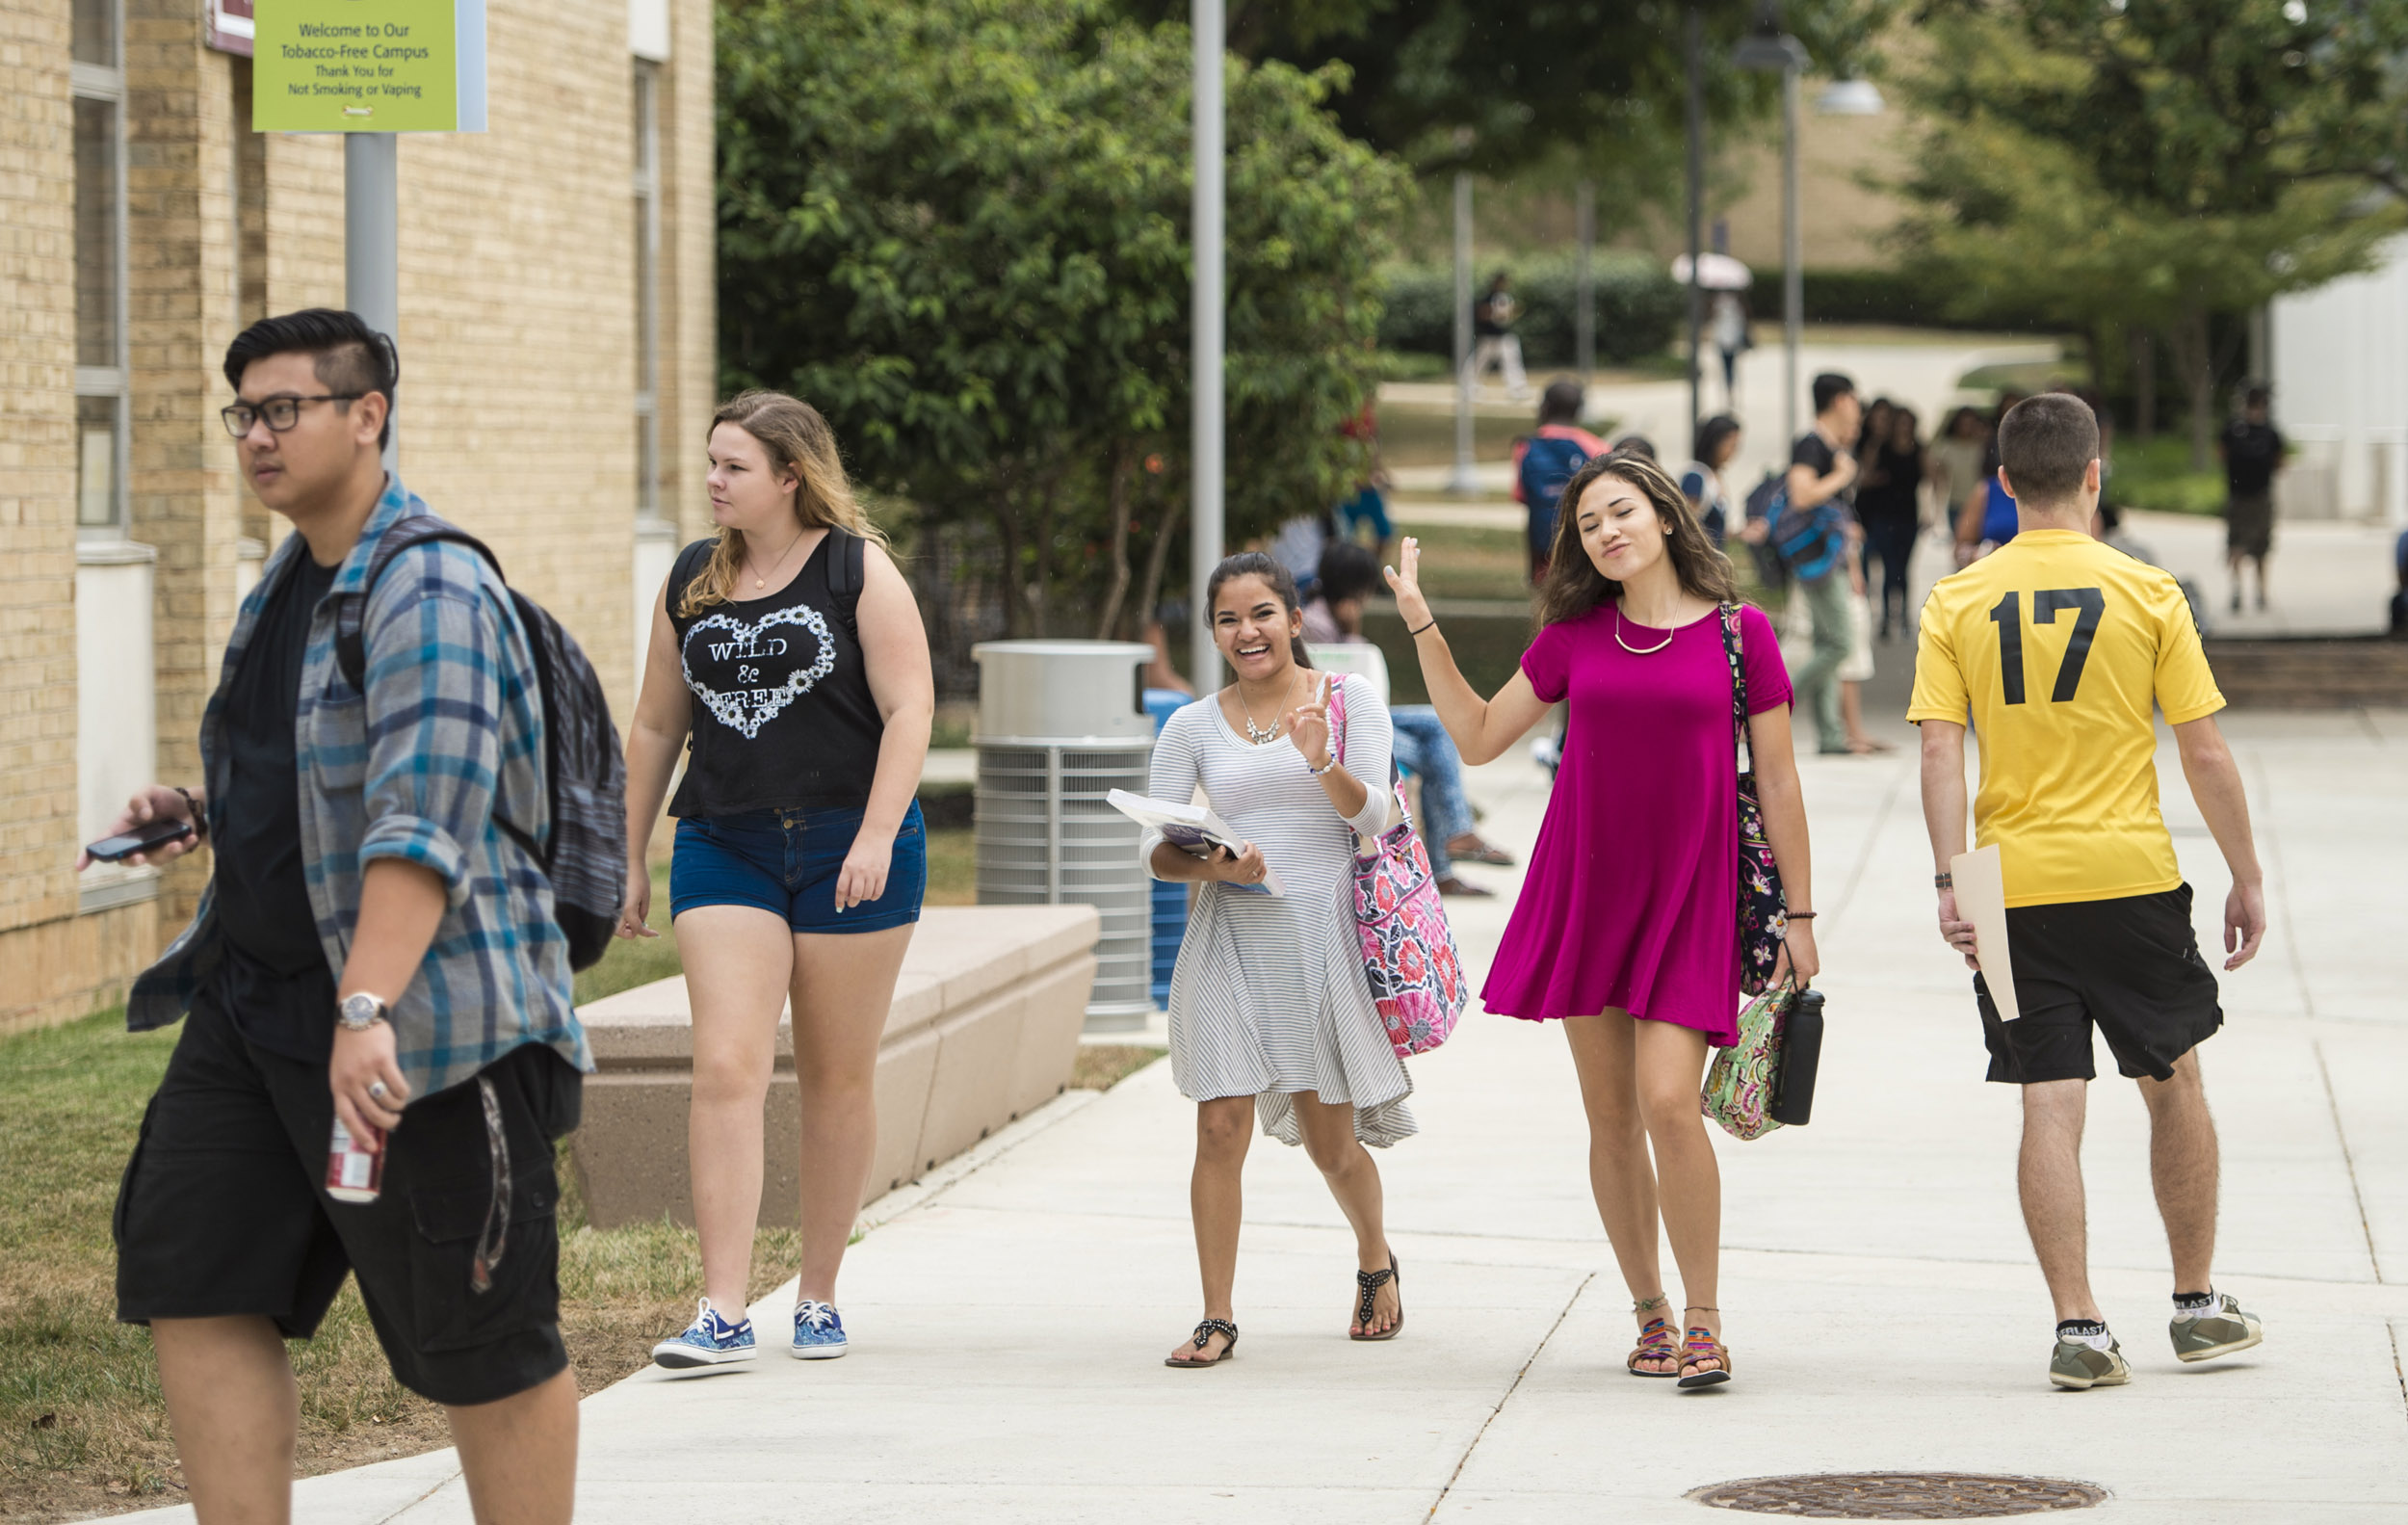 fairleigh dickinson university 4icu